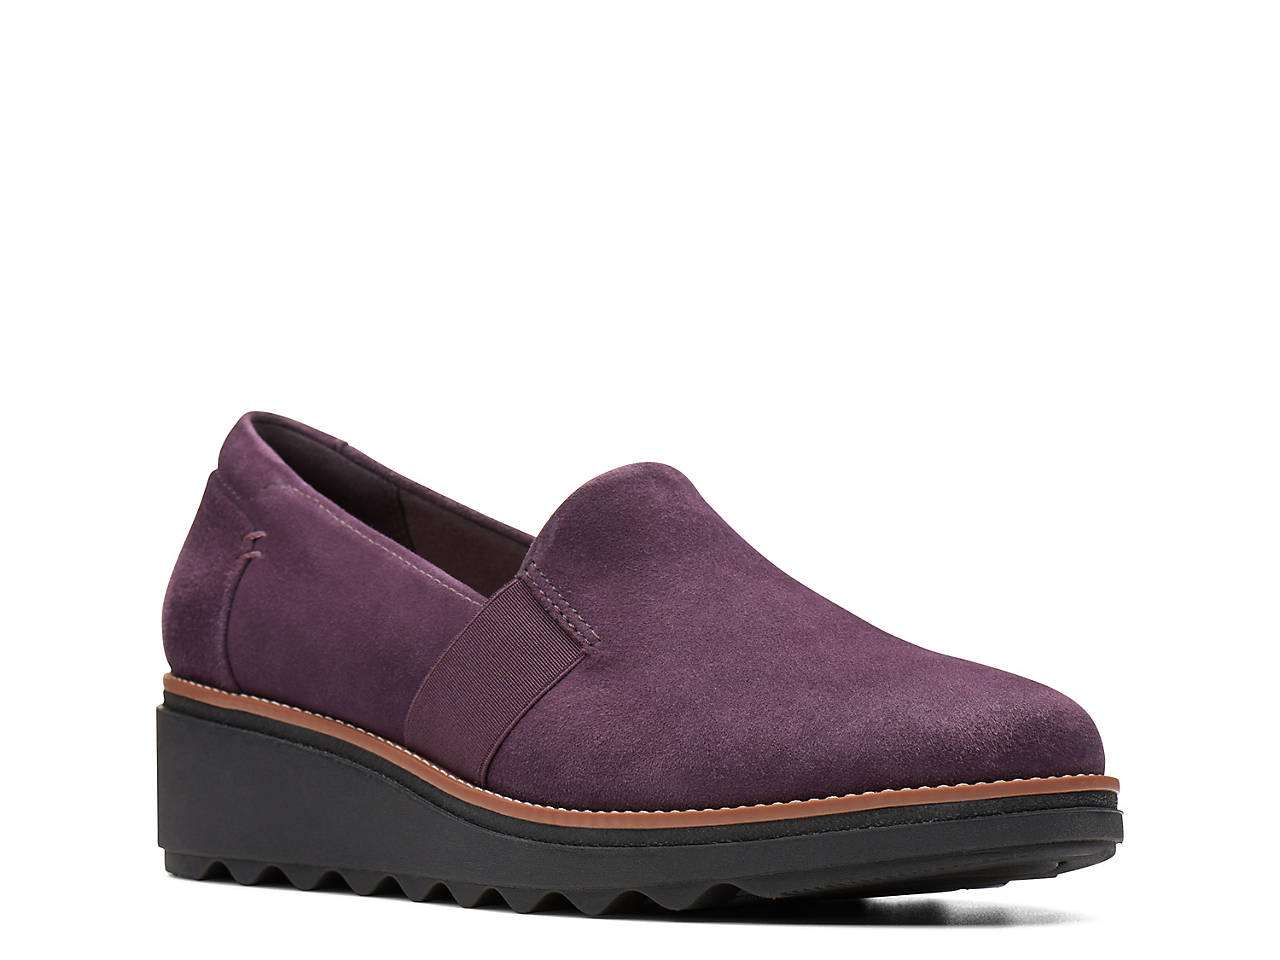 a8edfaed207 Clarks Sharon Tori Wedge Slip-On Women s Shoes